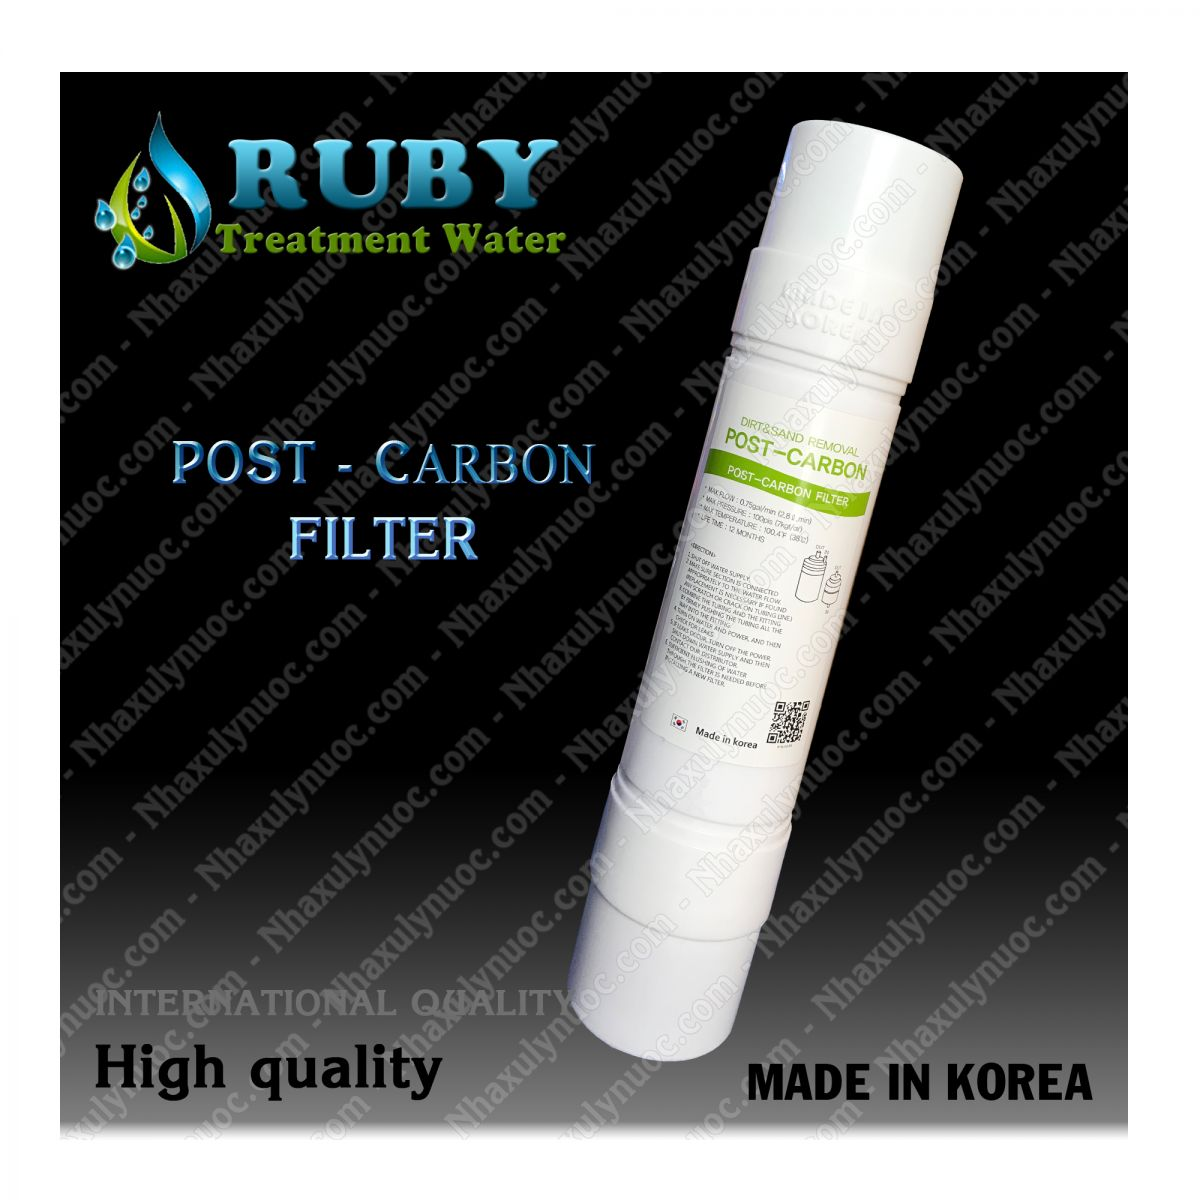 Loi loc Post carbon Han Quoc (Korea) chinh hang